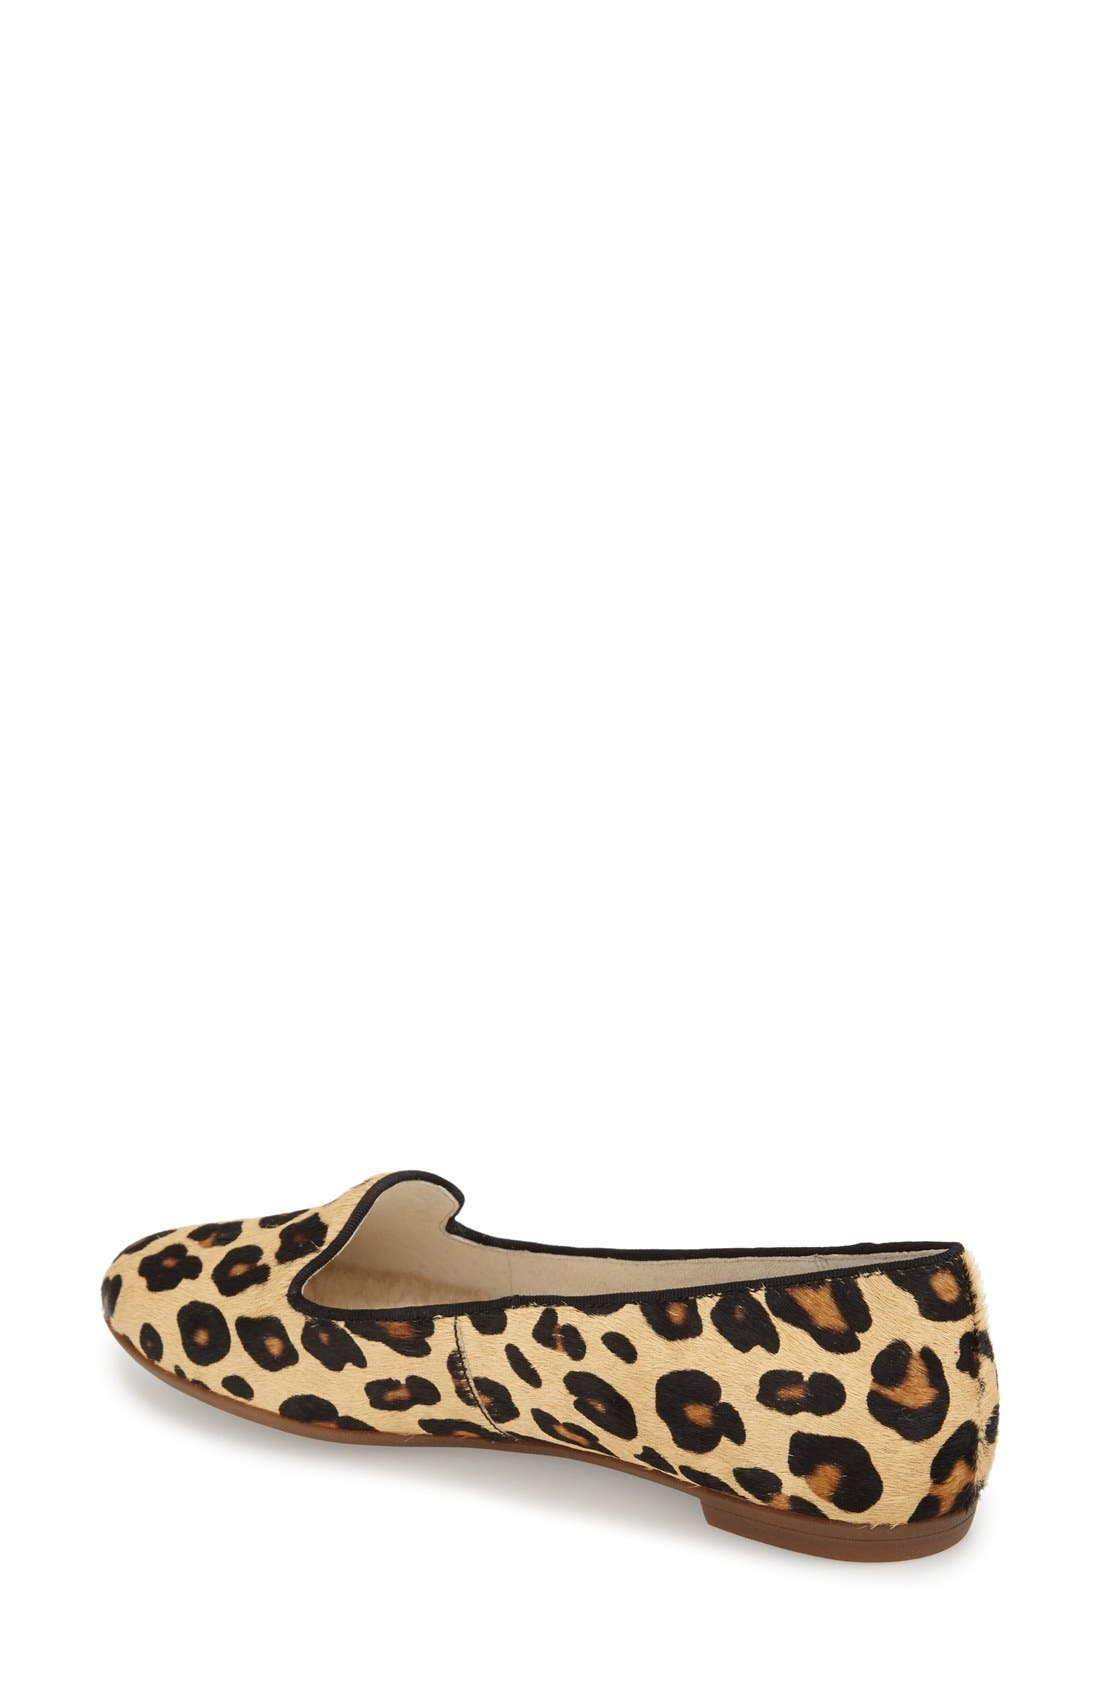 Alternate Image 2  - UGG® 'Blyss' Leopard Spot Calf Hair Flat (Women)